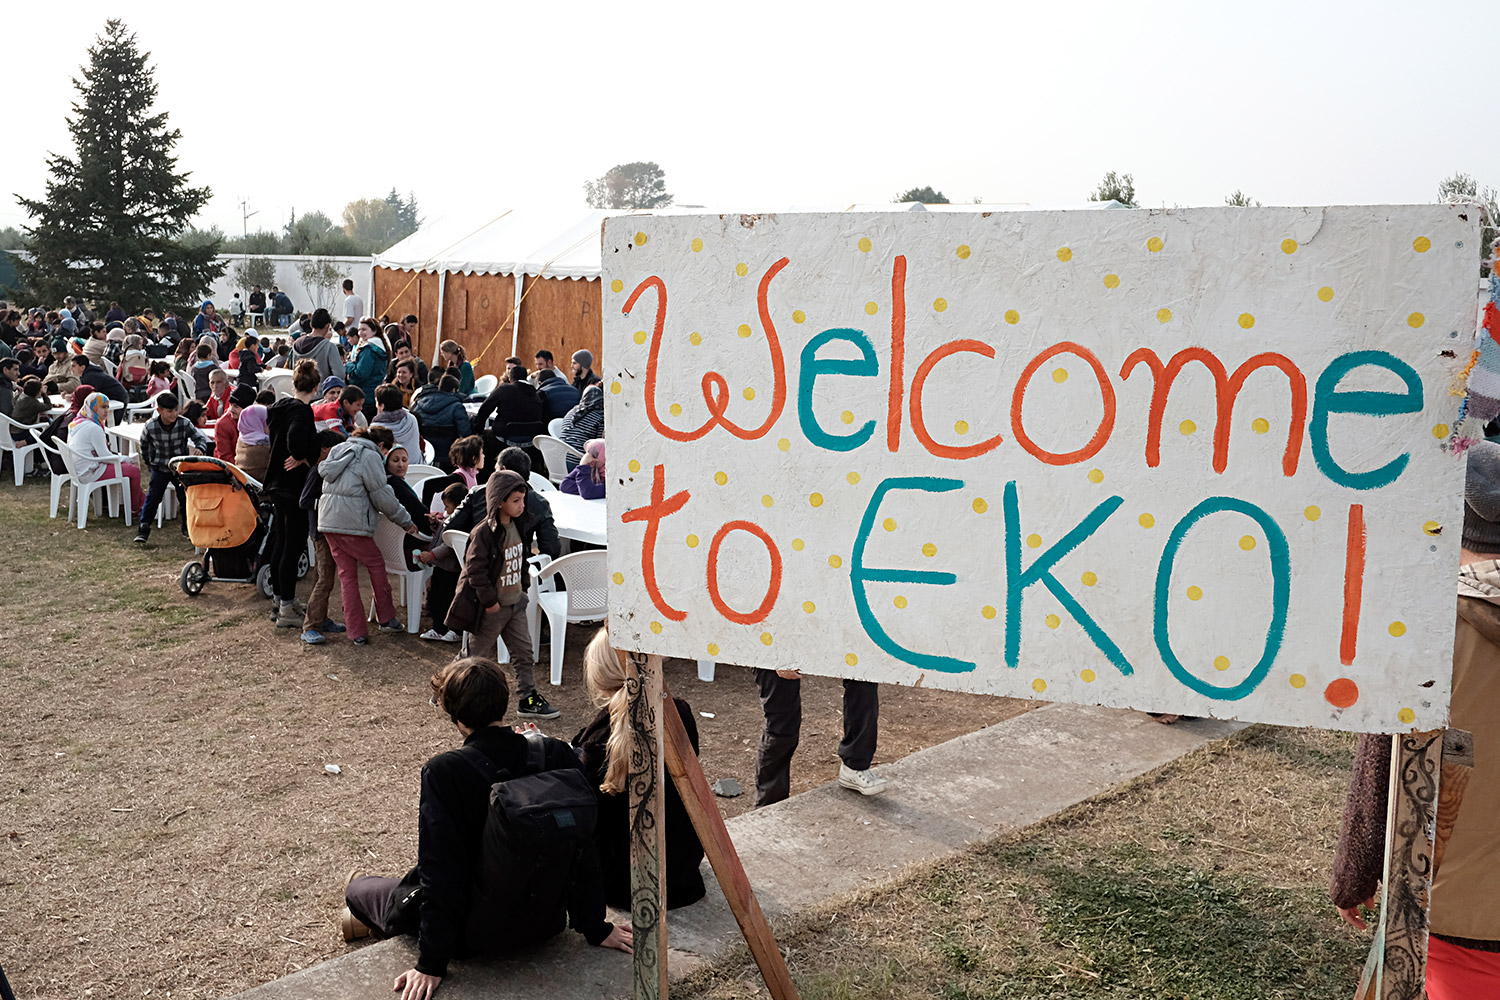 Volunteers from the Eko Project have set up a camp next to Vasilika, near Thessaloniki